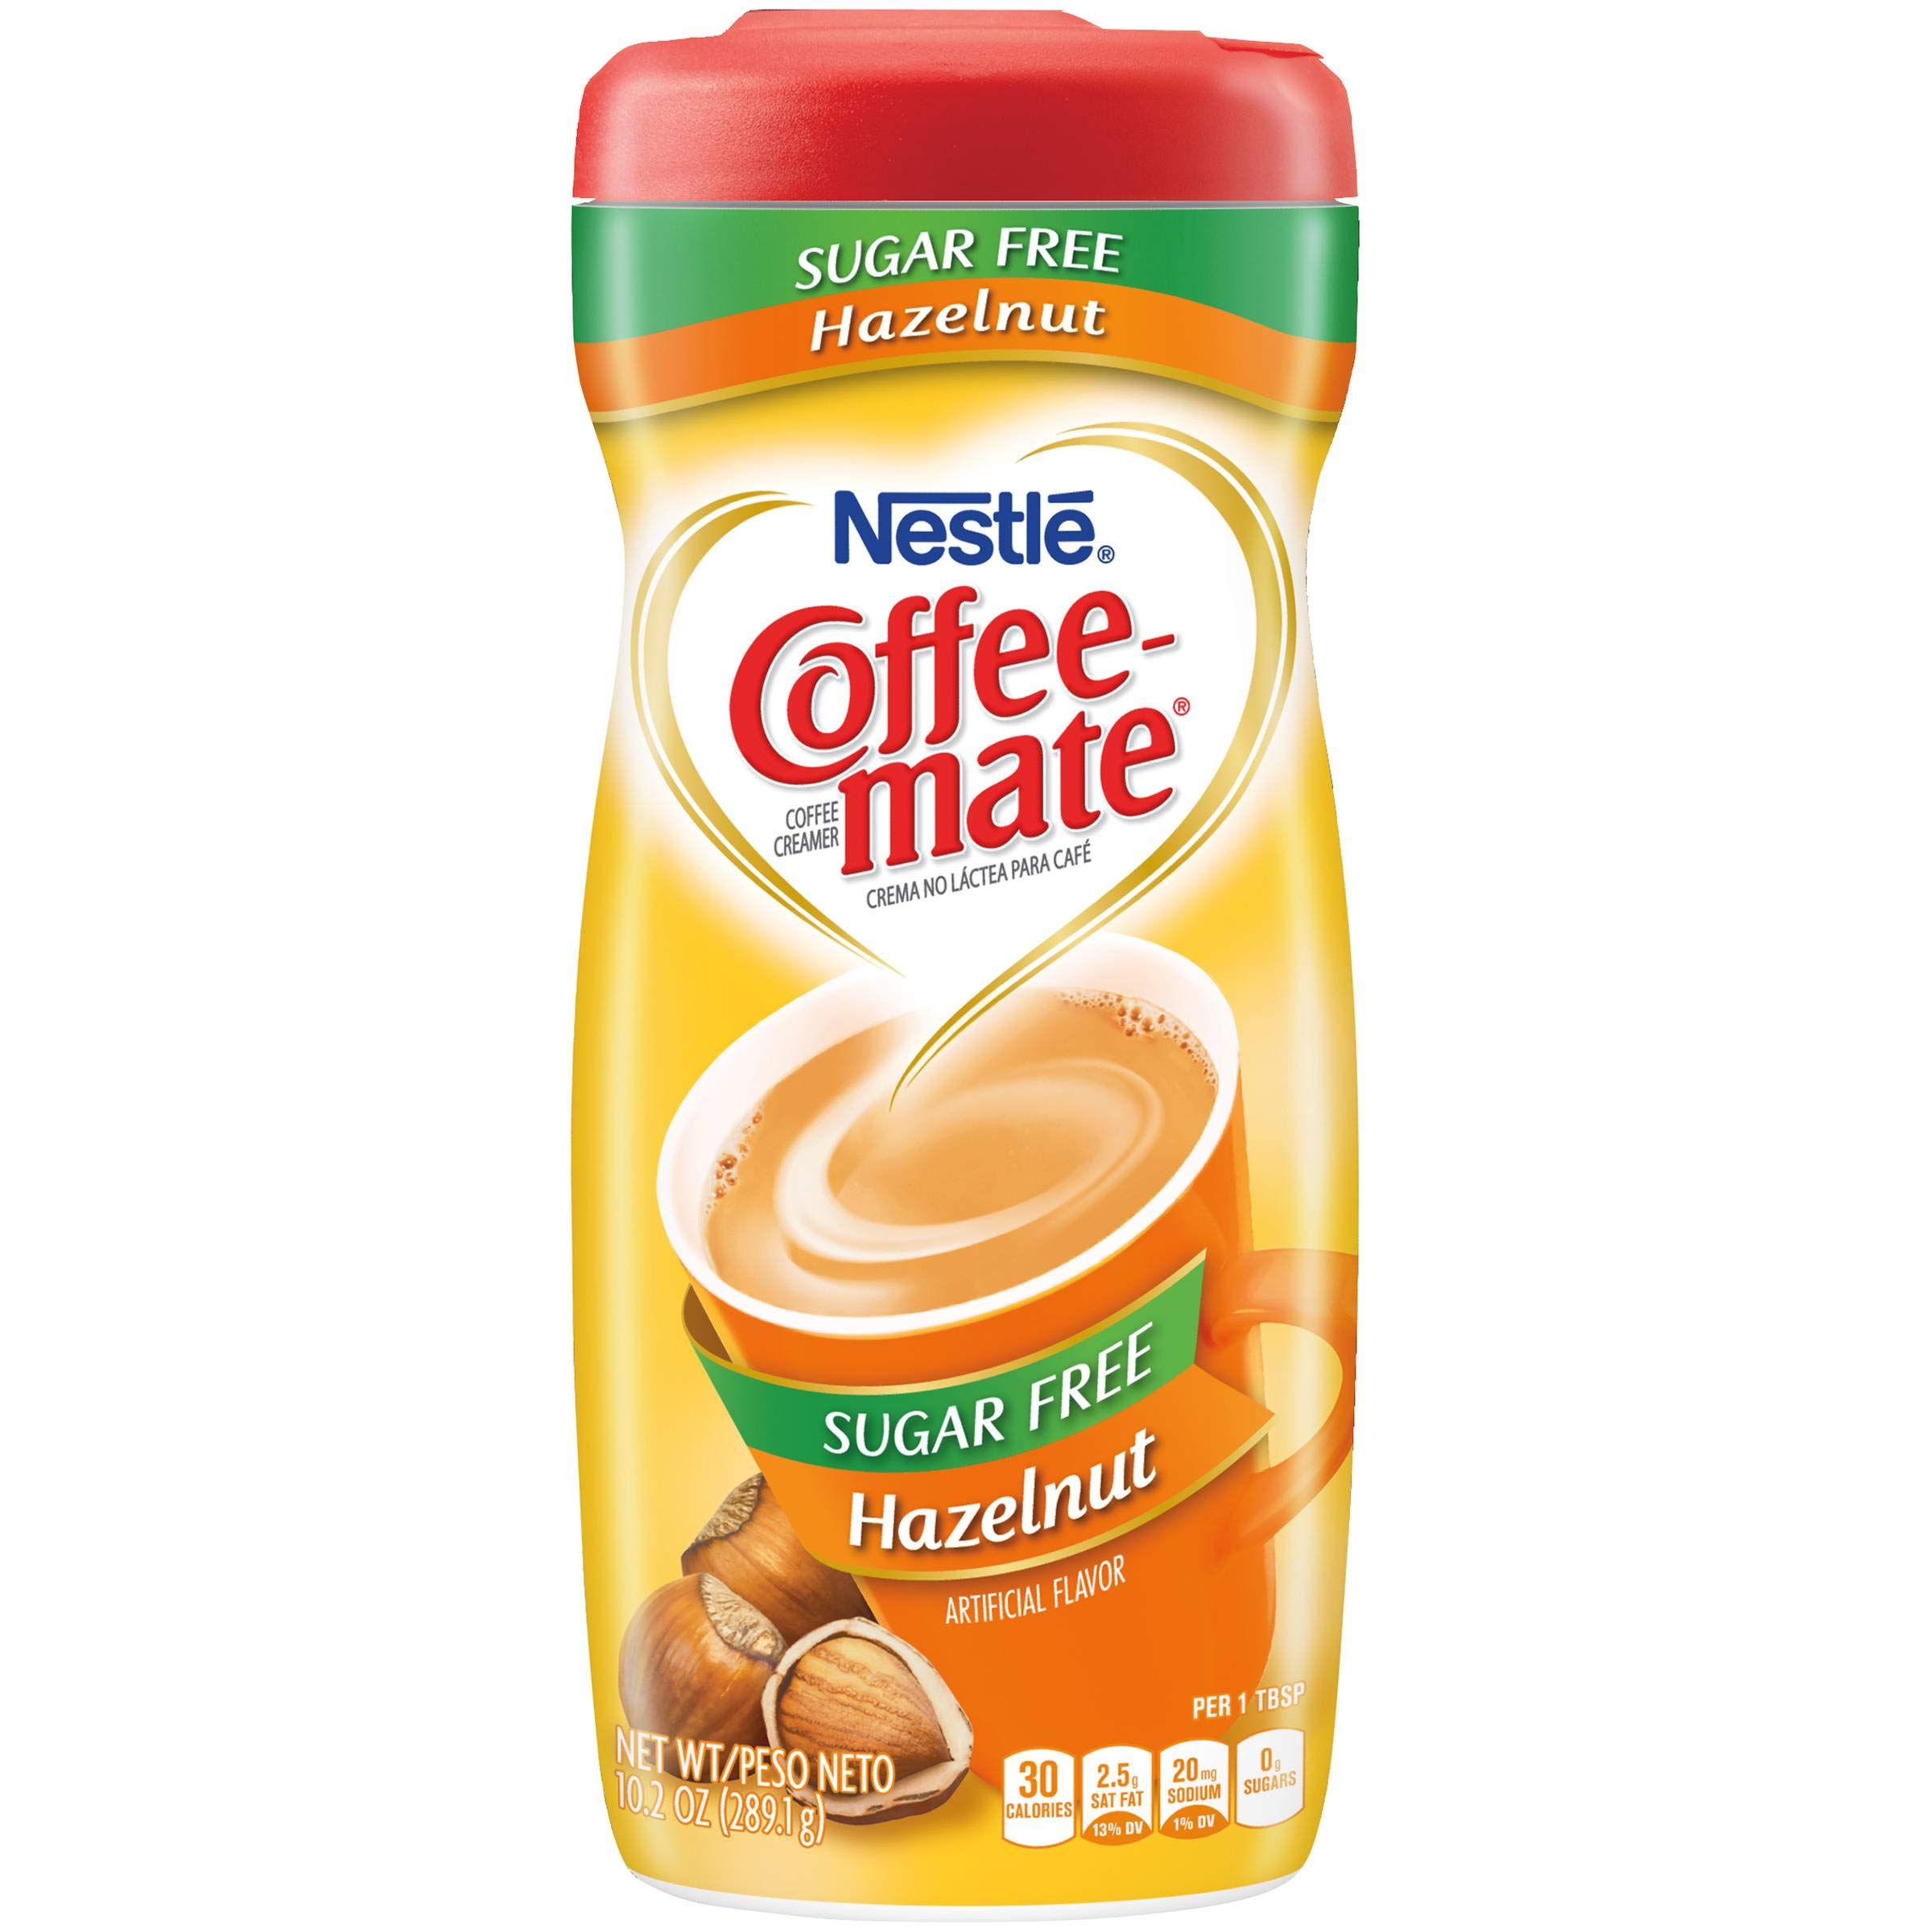 Coffeemate Sugar Free HAZELNUT Coffee Creamer 10.2oz (Pack of 6) by Coffee-mate